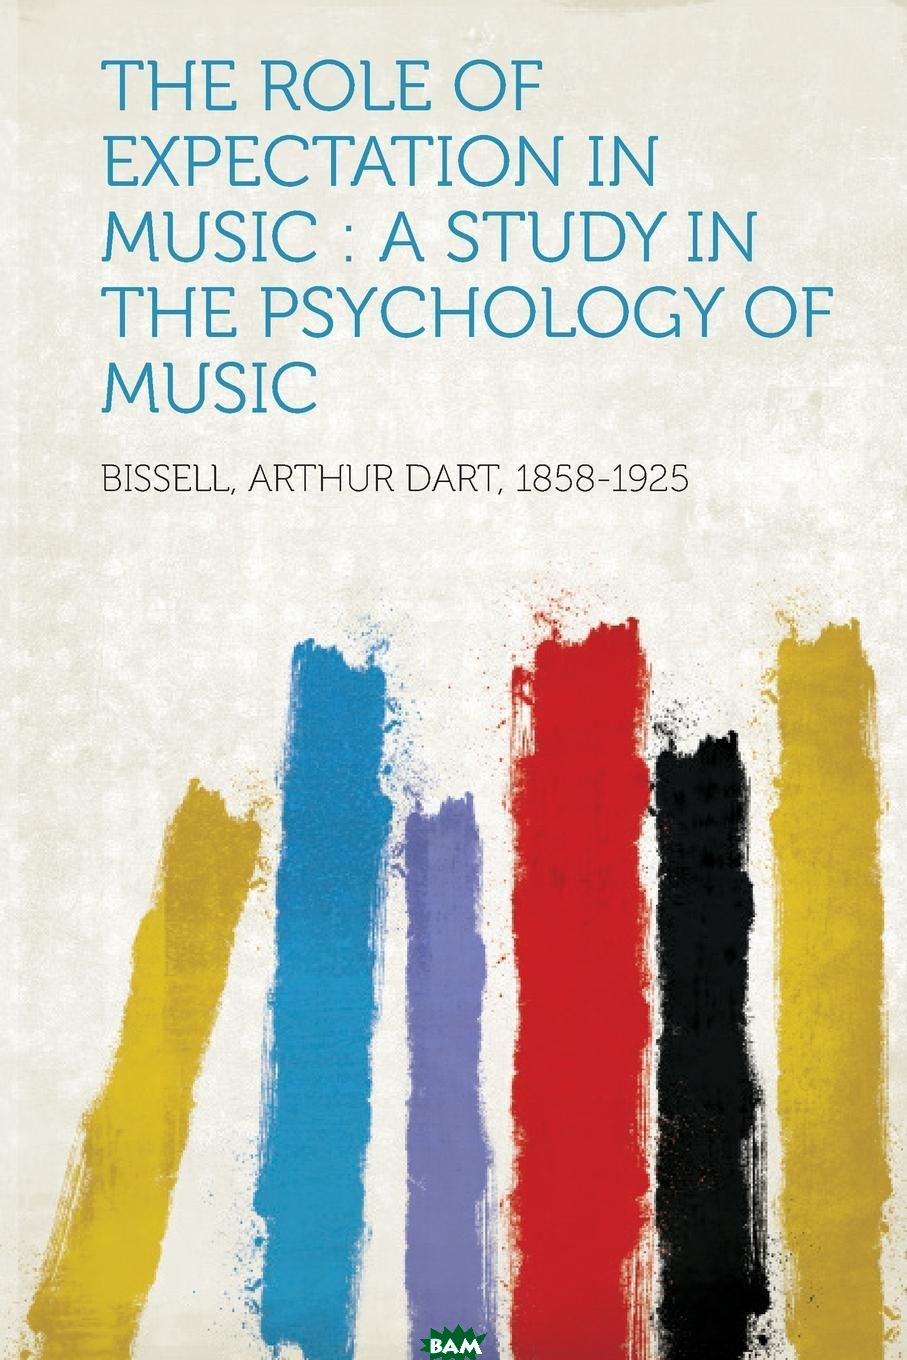 The Role of Expectation in Music. A Study in the Psychology of Music, 9781314437362  - купить со скидкой